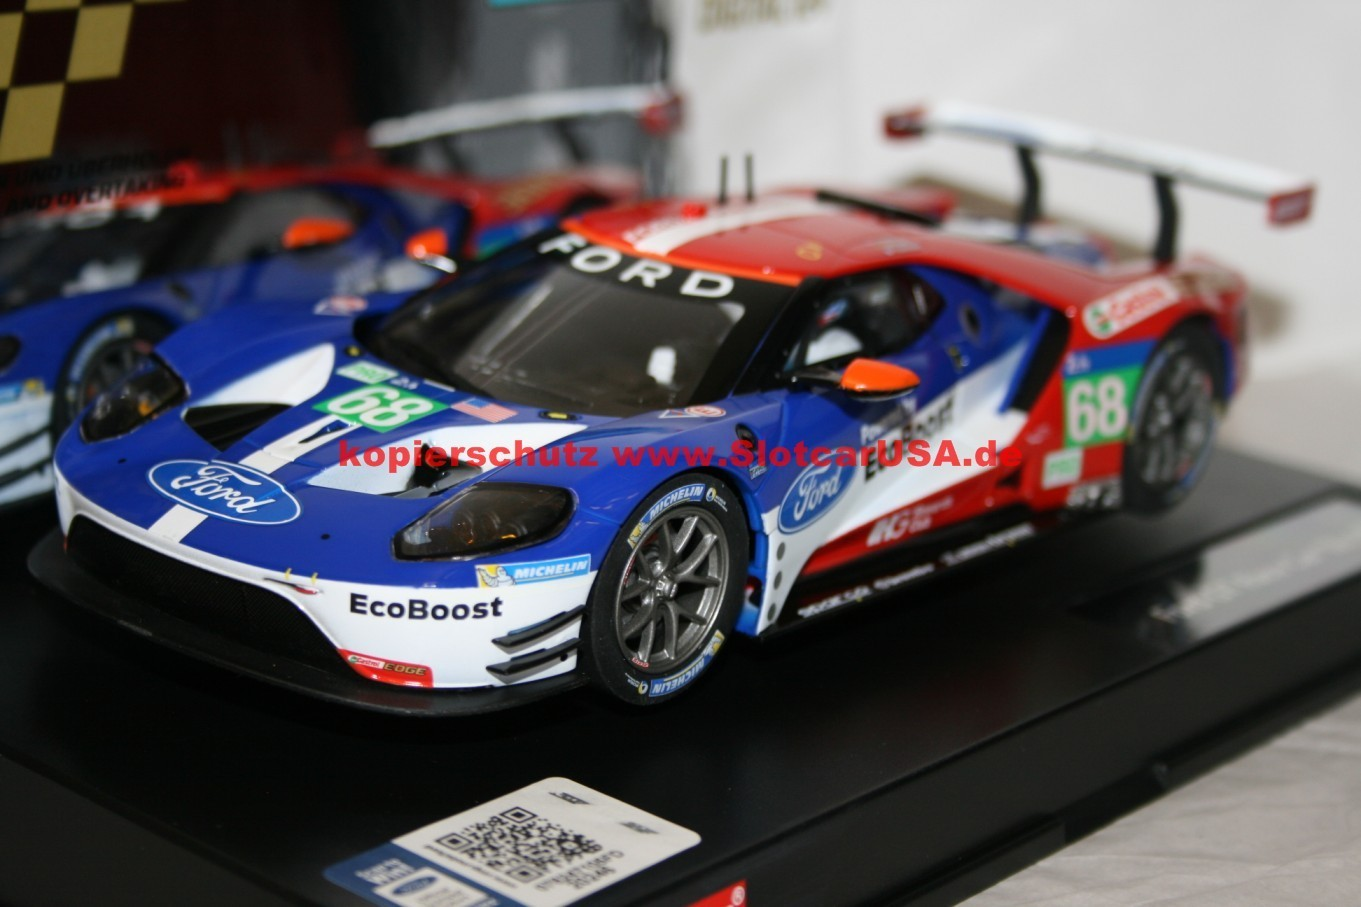 carrera digital 124 23832 ford gt race car slotcarusa. Black Bedroom Furniture Sets. Home Design Ideas